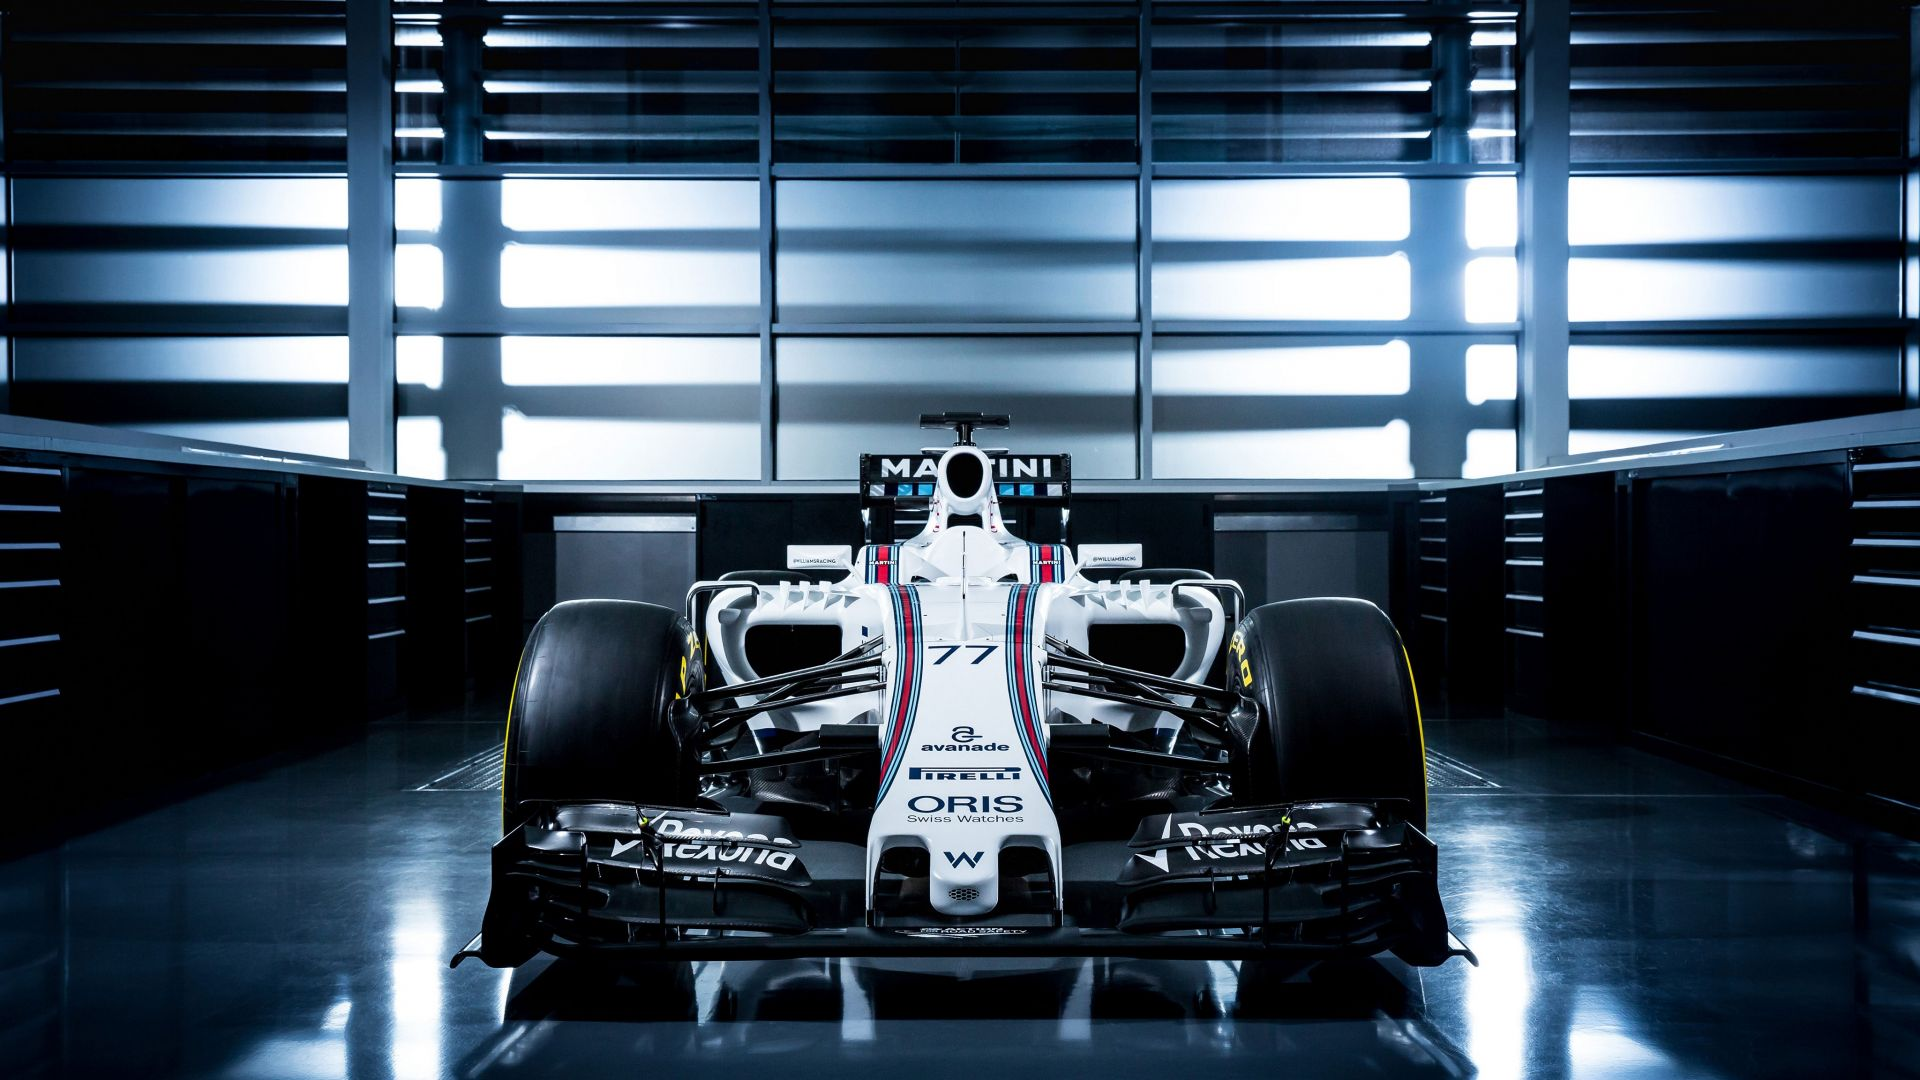 Williams FW38, Formula 1, testing, LIVE from Barcelona, F1 (horizontal)